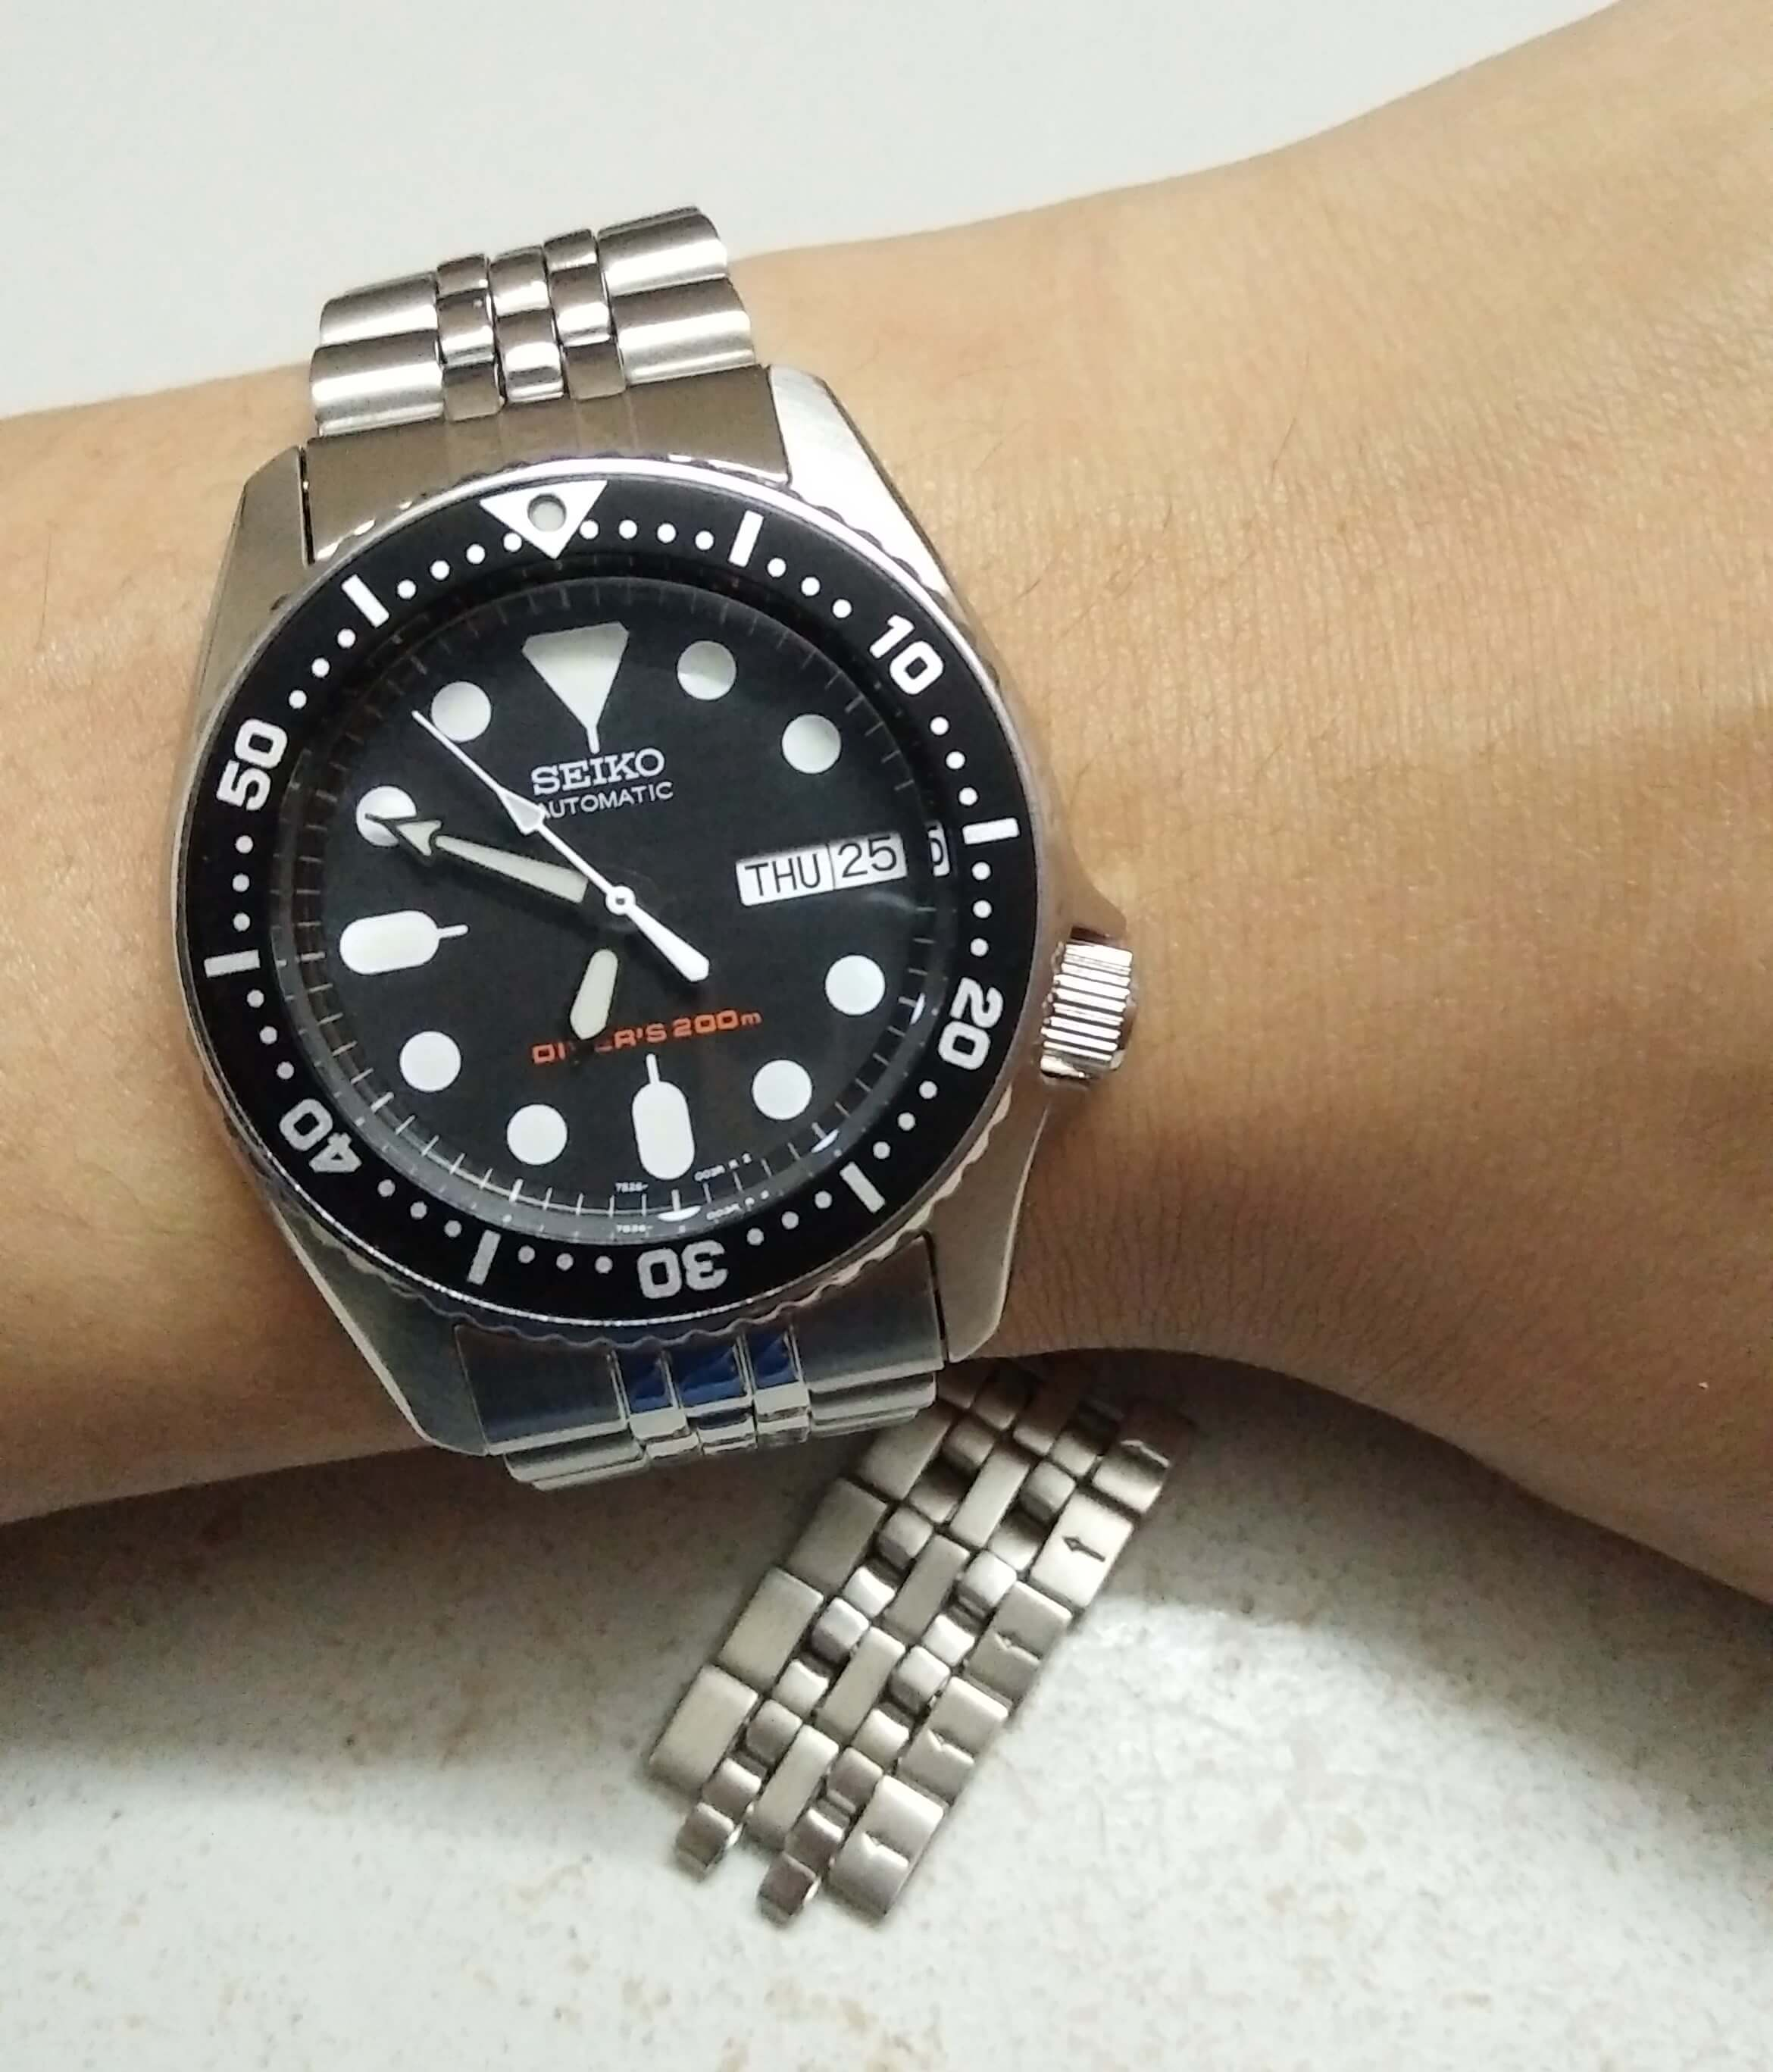 Seiko SKX013 worn on hand